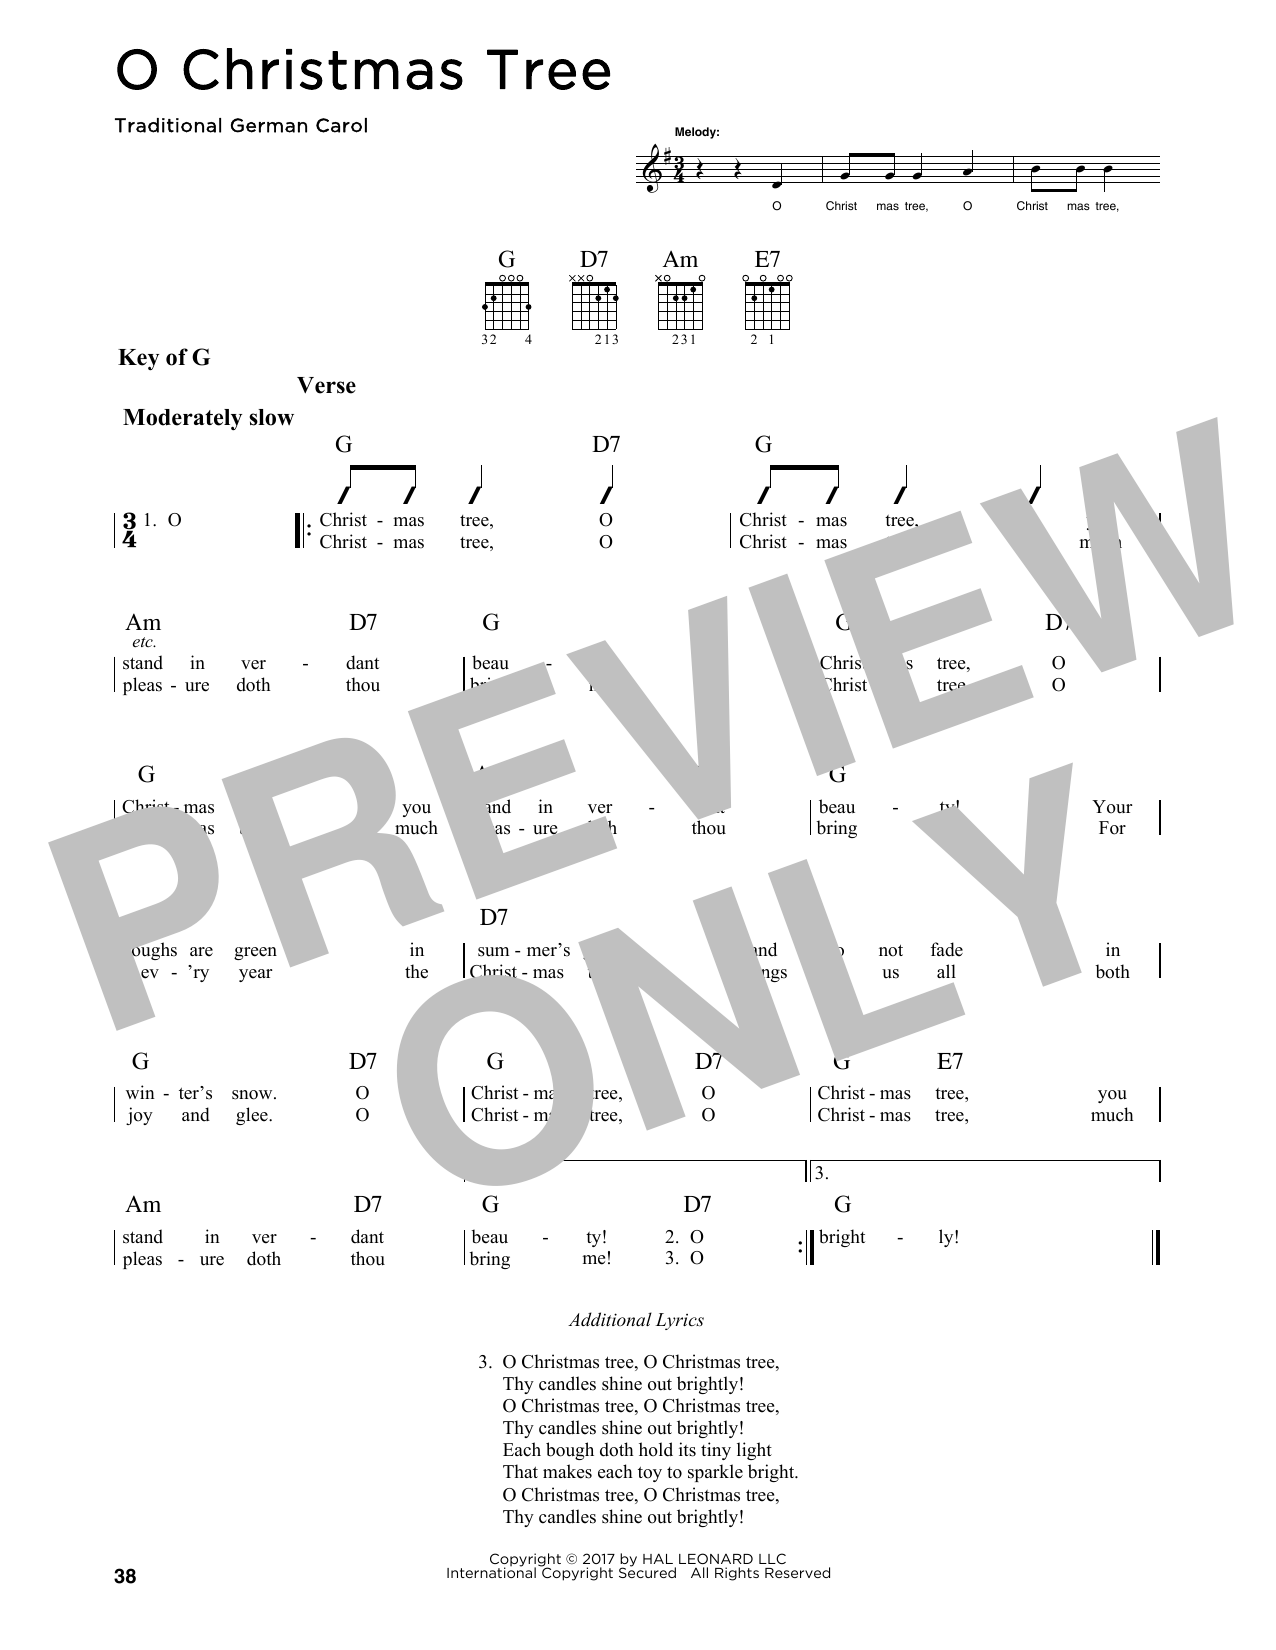 O Christmas Tree Sheet Music | Traditional German Carol | Guitar ...